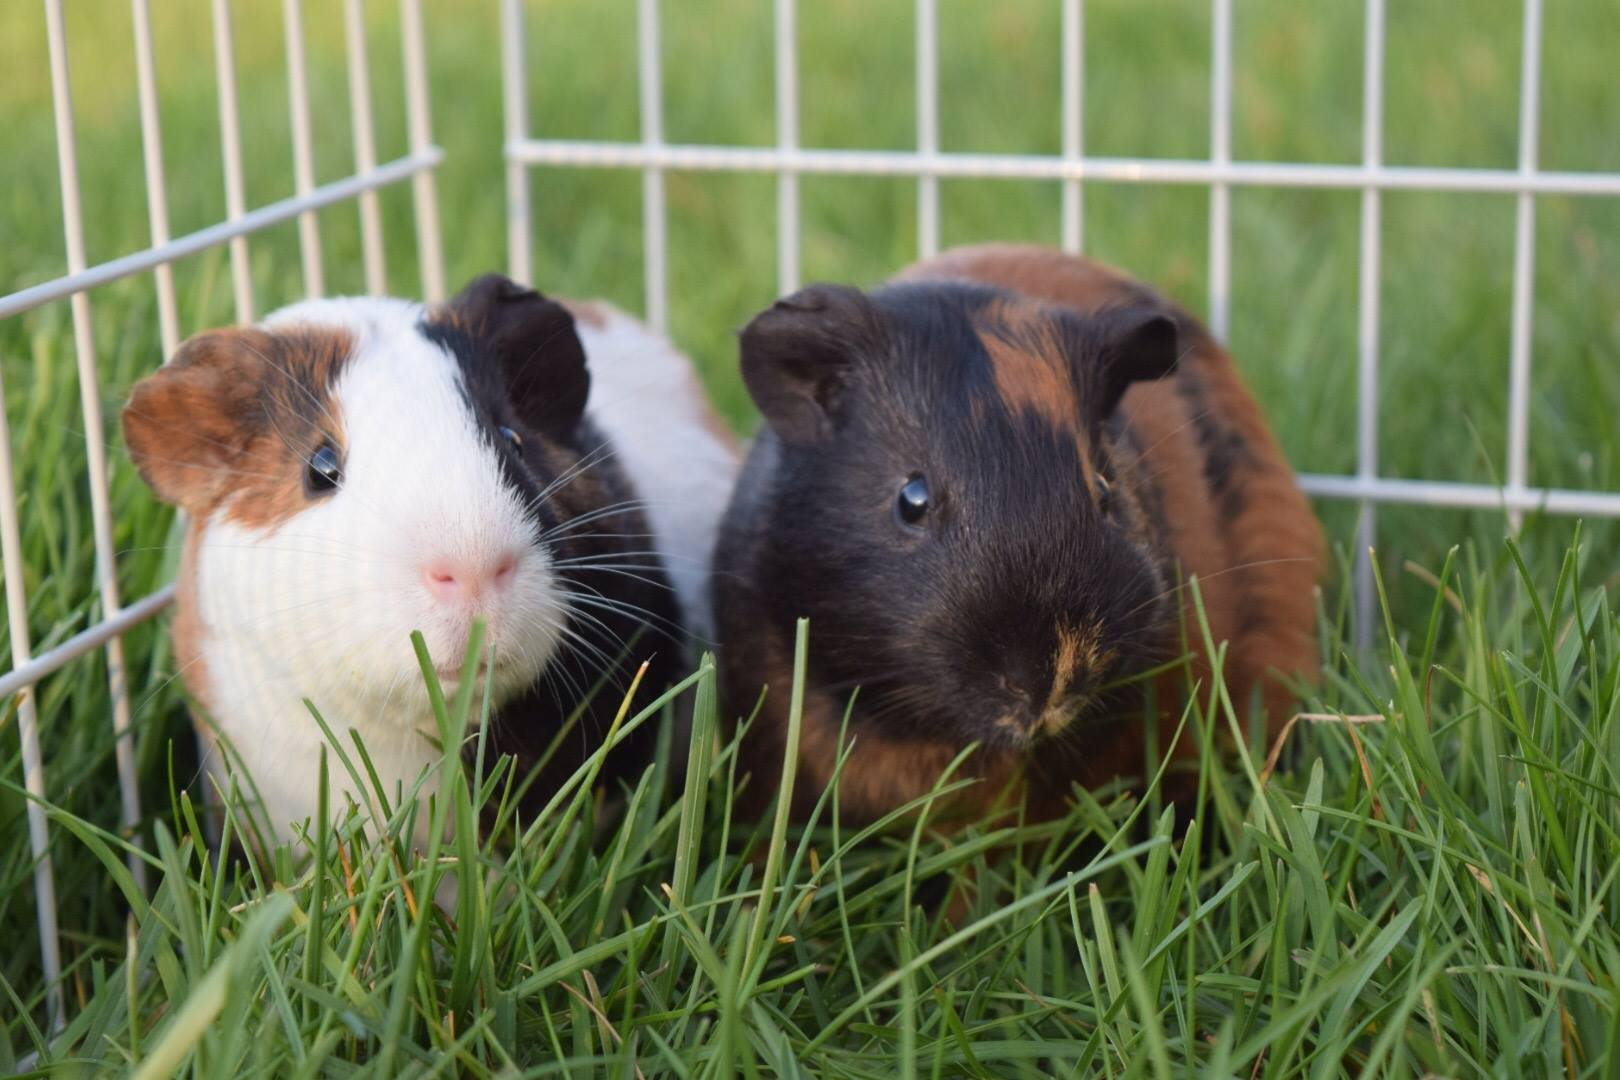 19. Pip & Zip - Pip (on left) is my 2 year old guinea pig. He hates being apart from his brother Zip (on right). He loves to eat and is very talkative, especially when he sees me coming with snacks.